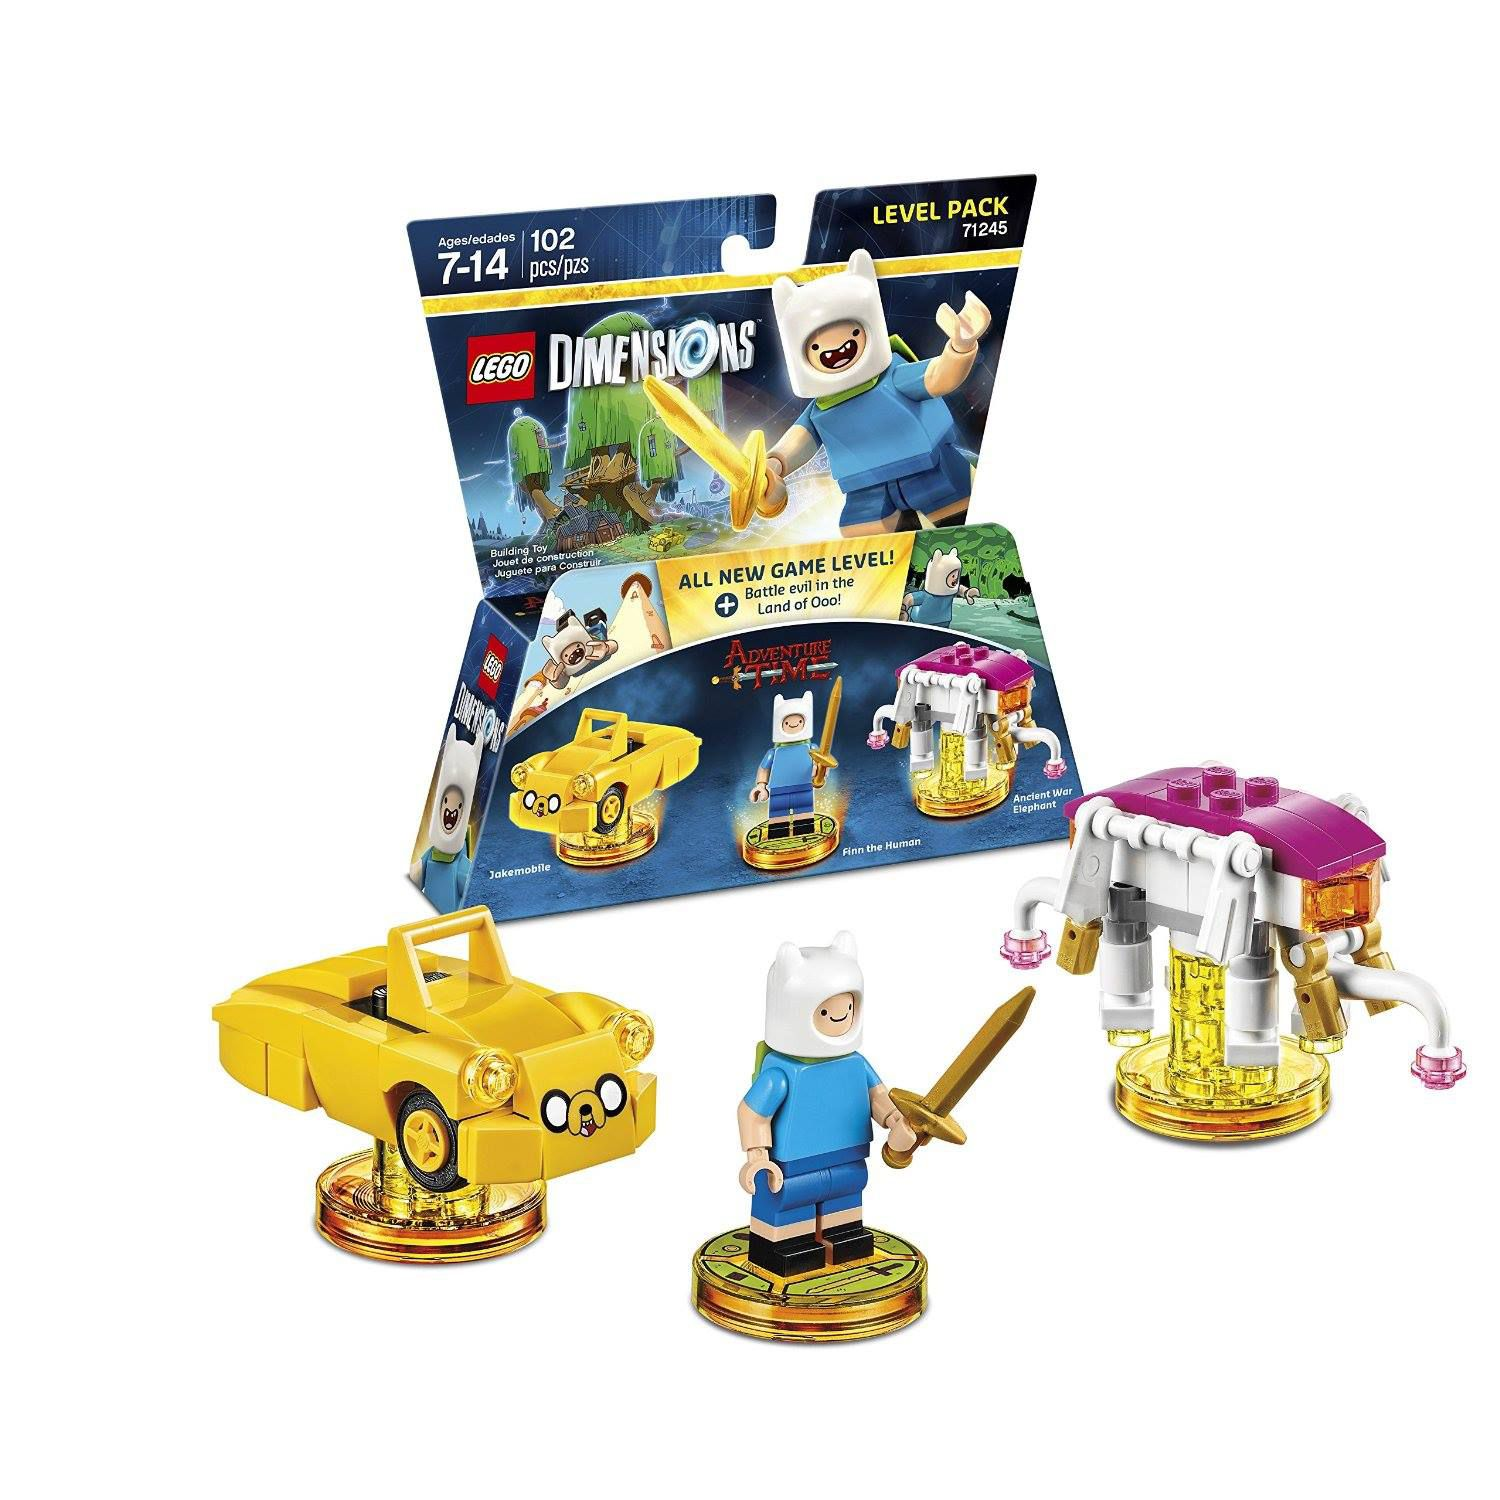 LEGO Dimensions 71245 Level Pack Adventure Time LEGO_DIMENSIONS_71245_Adventure-Time-04.jpg